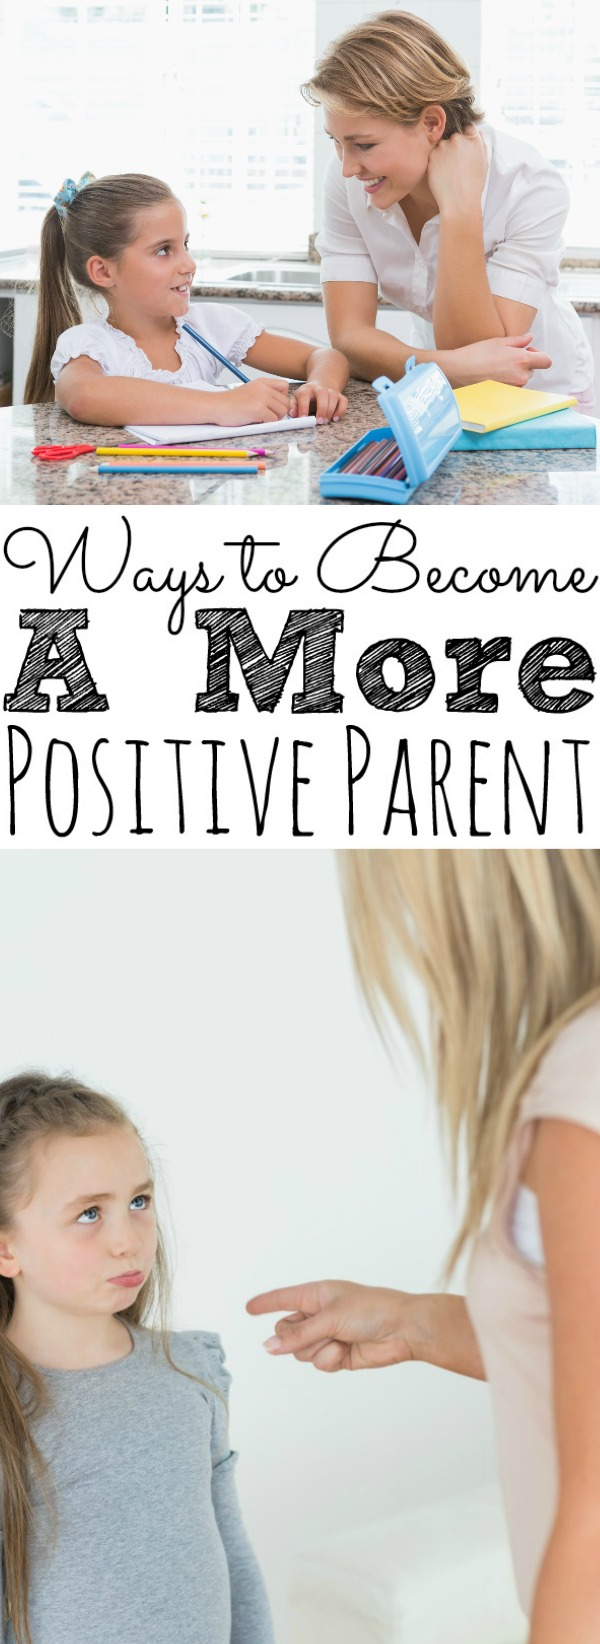 Ways To Become A More Positive Parent